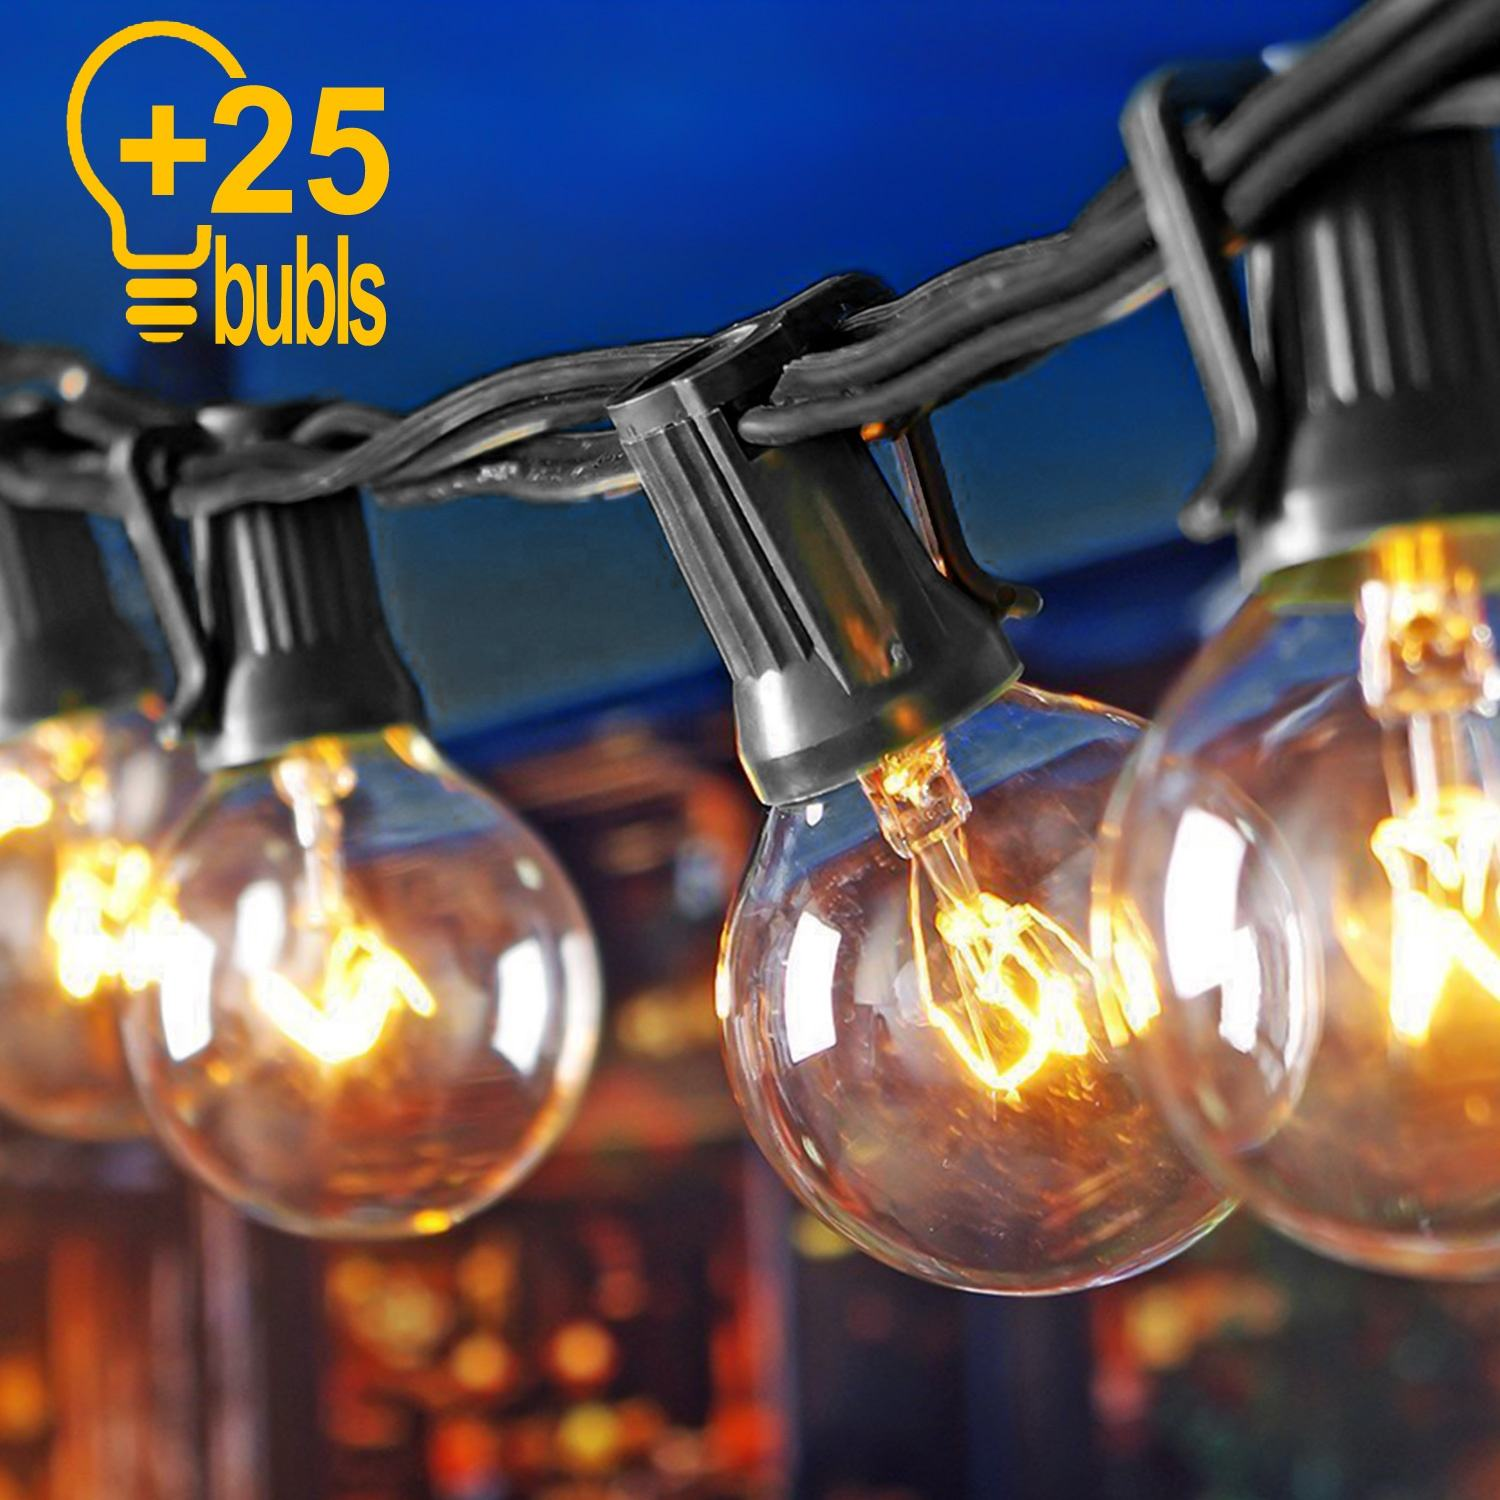 Customized Festoon Patio Cafe Light Outdoor Decoration Globe Vintage Bulbs G40 String Light outdoor